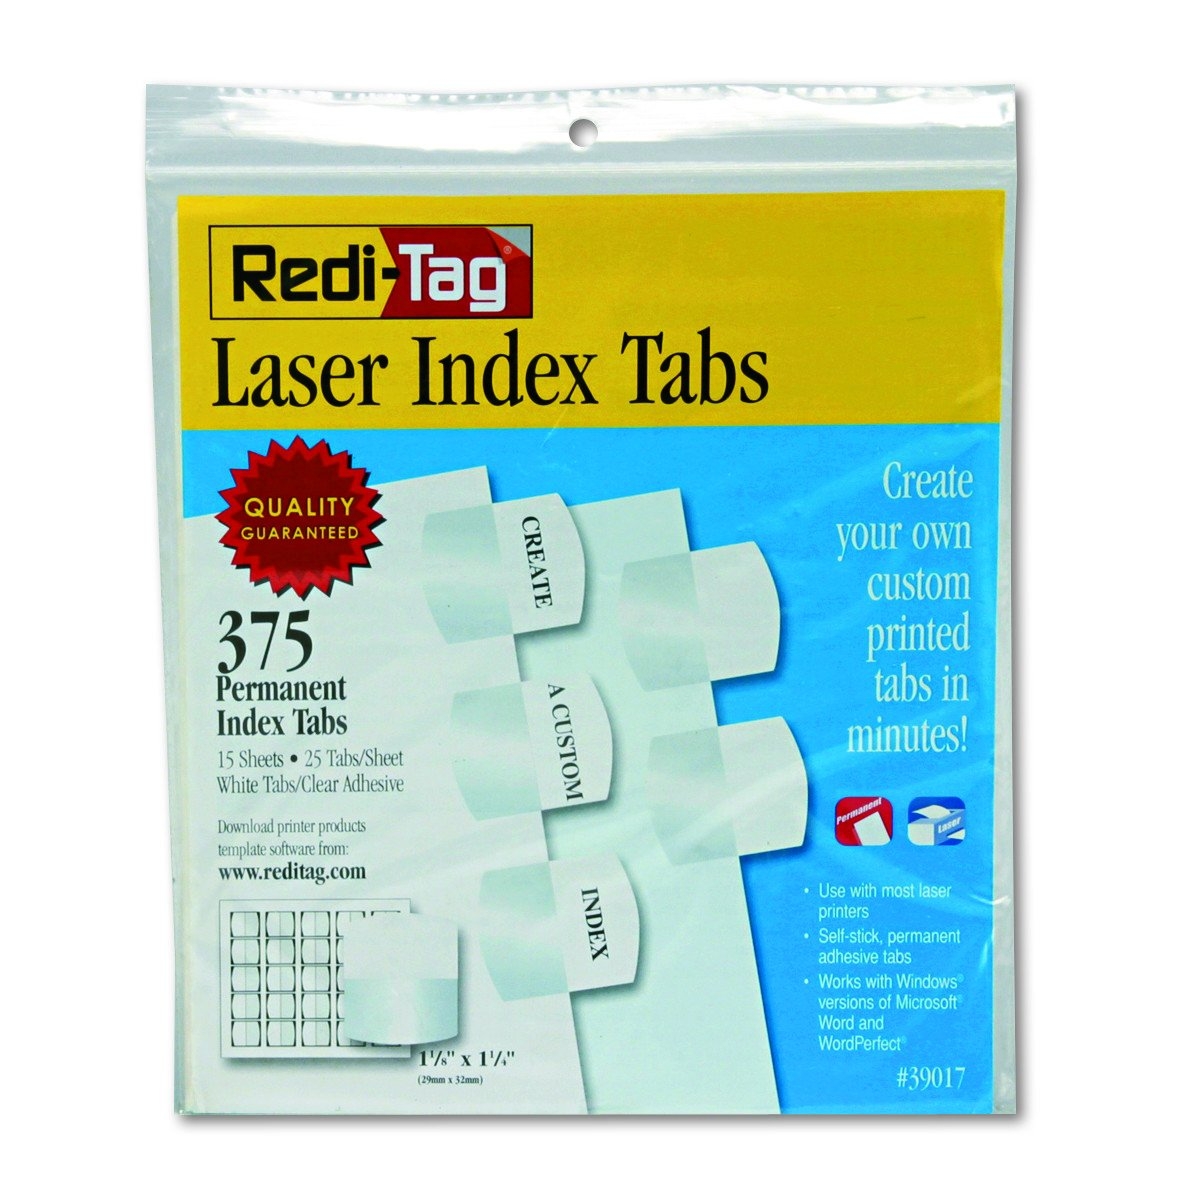 Redi-Tag-Laser Printable Index Tabs, Permanent Adhesive, 1-1/8 X 1-1/4-Inch, Bulk Packed, 375 Per Pack, Assorted Colors-39020